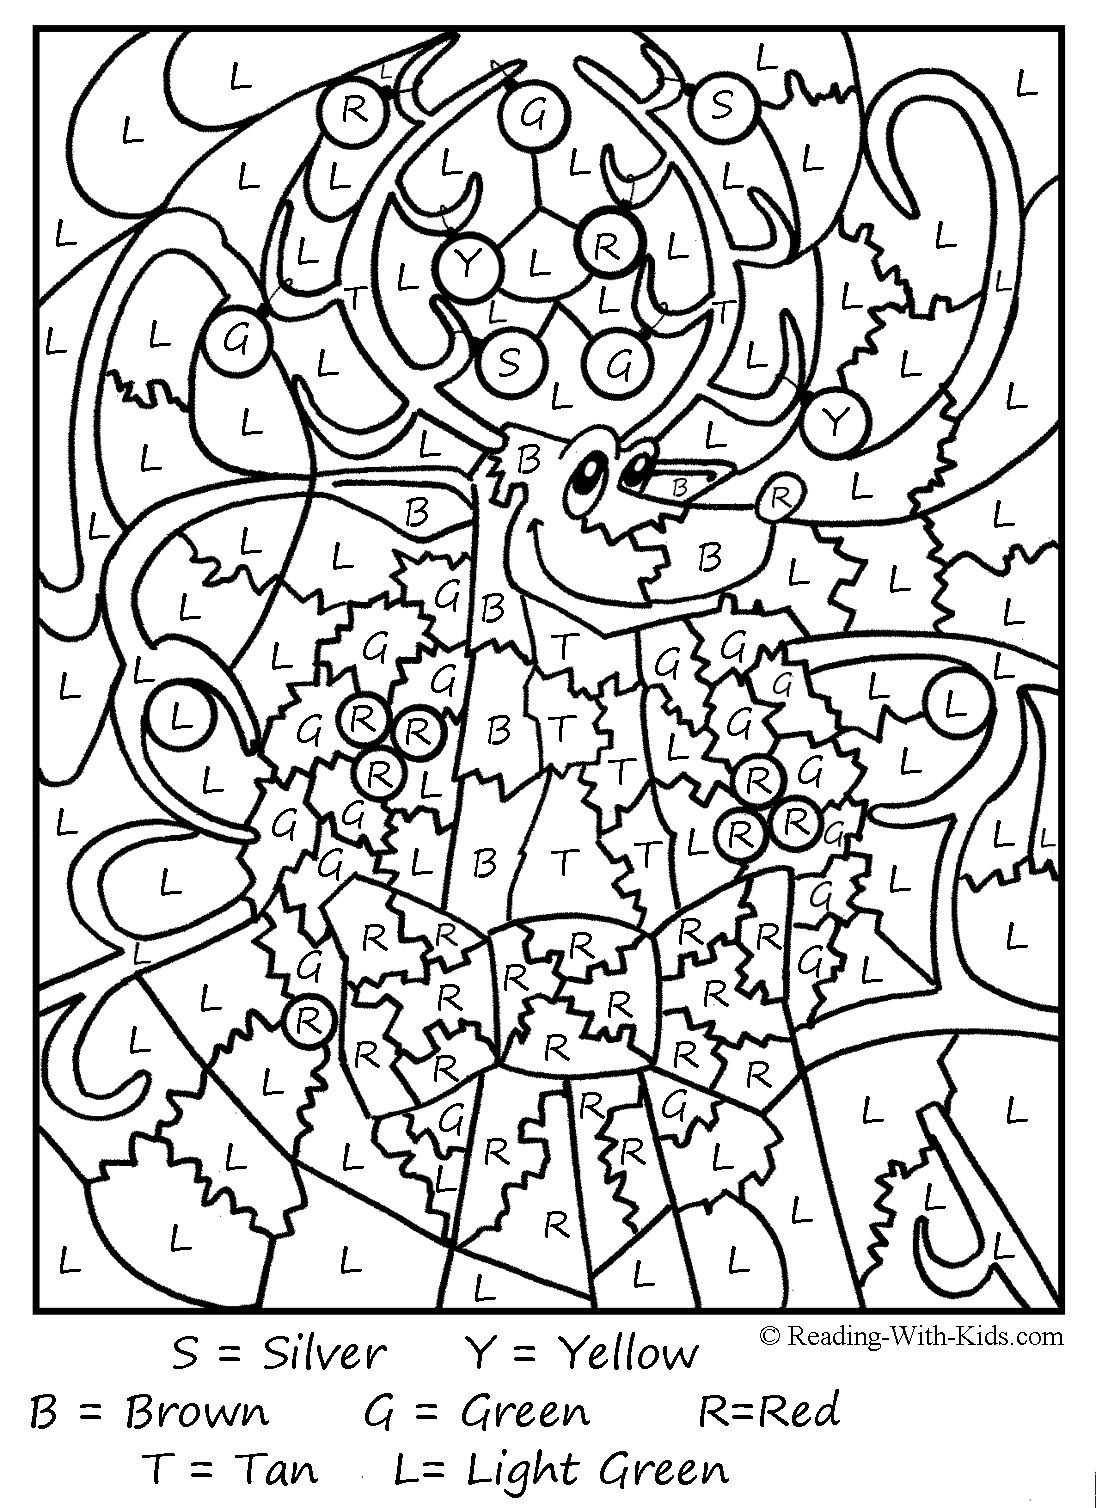 Color By Number Reindeer Christmas Coloring Pages Christmas Color By Number Coloring Pages For Kids